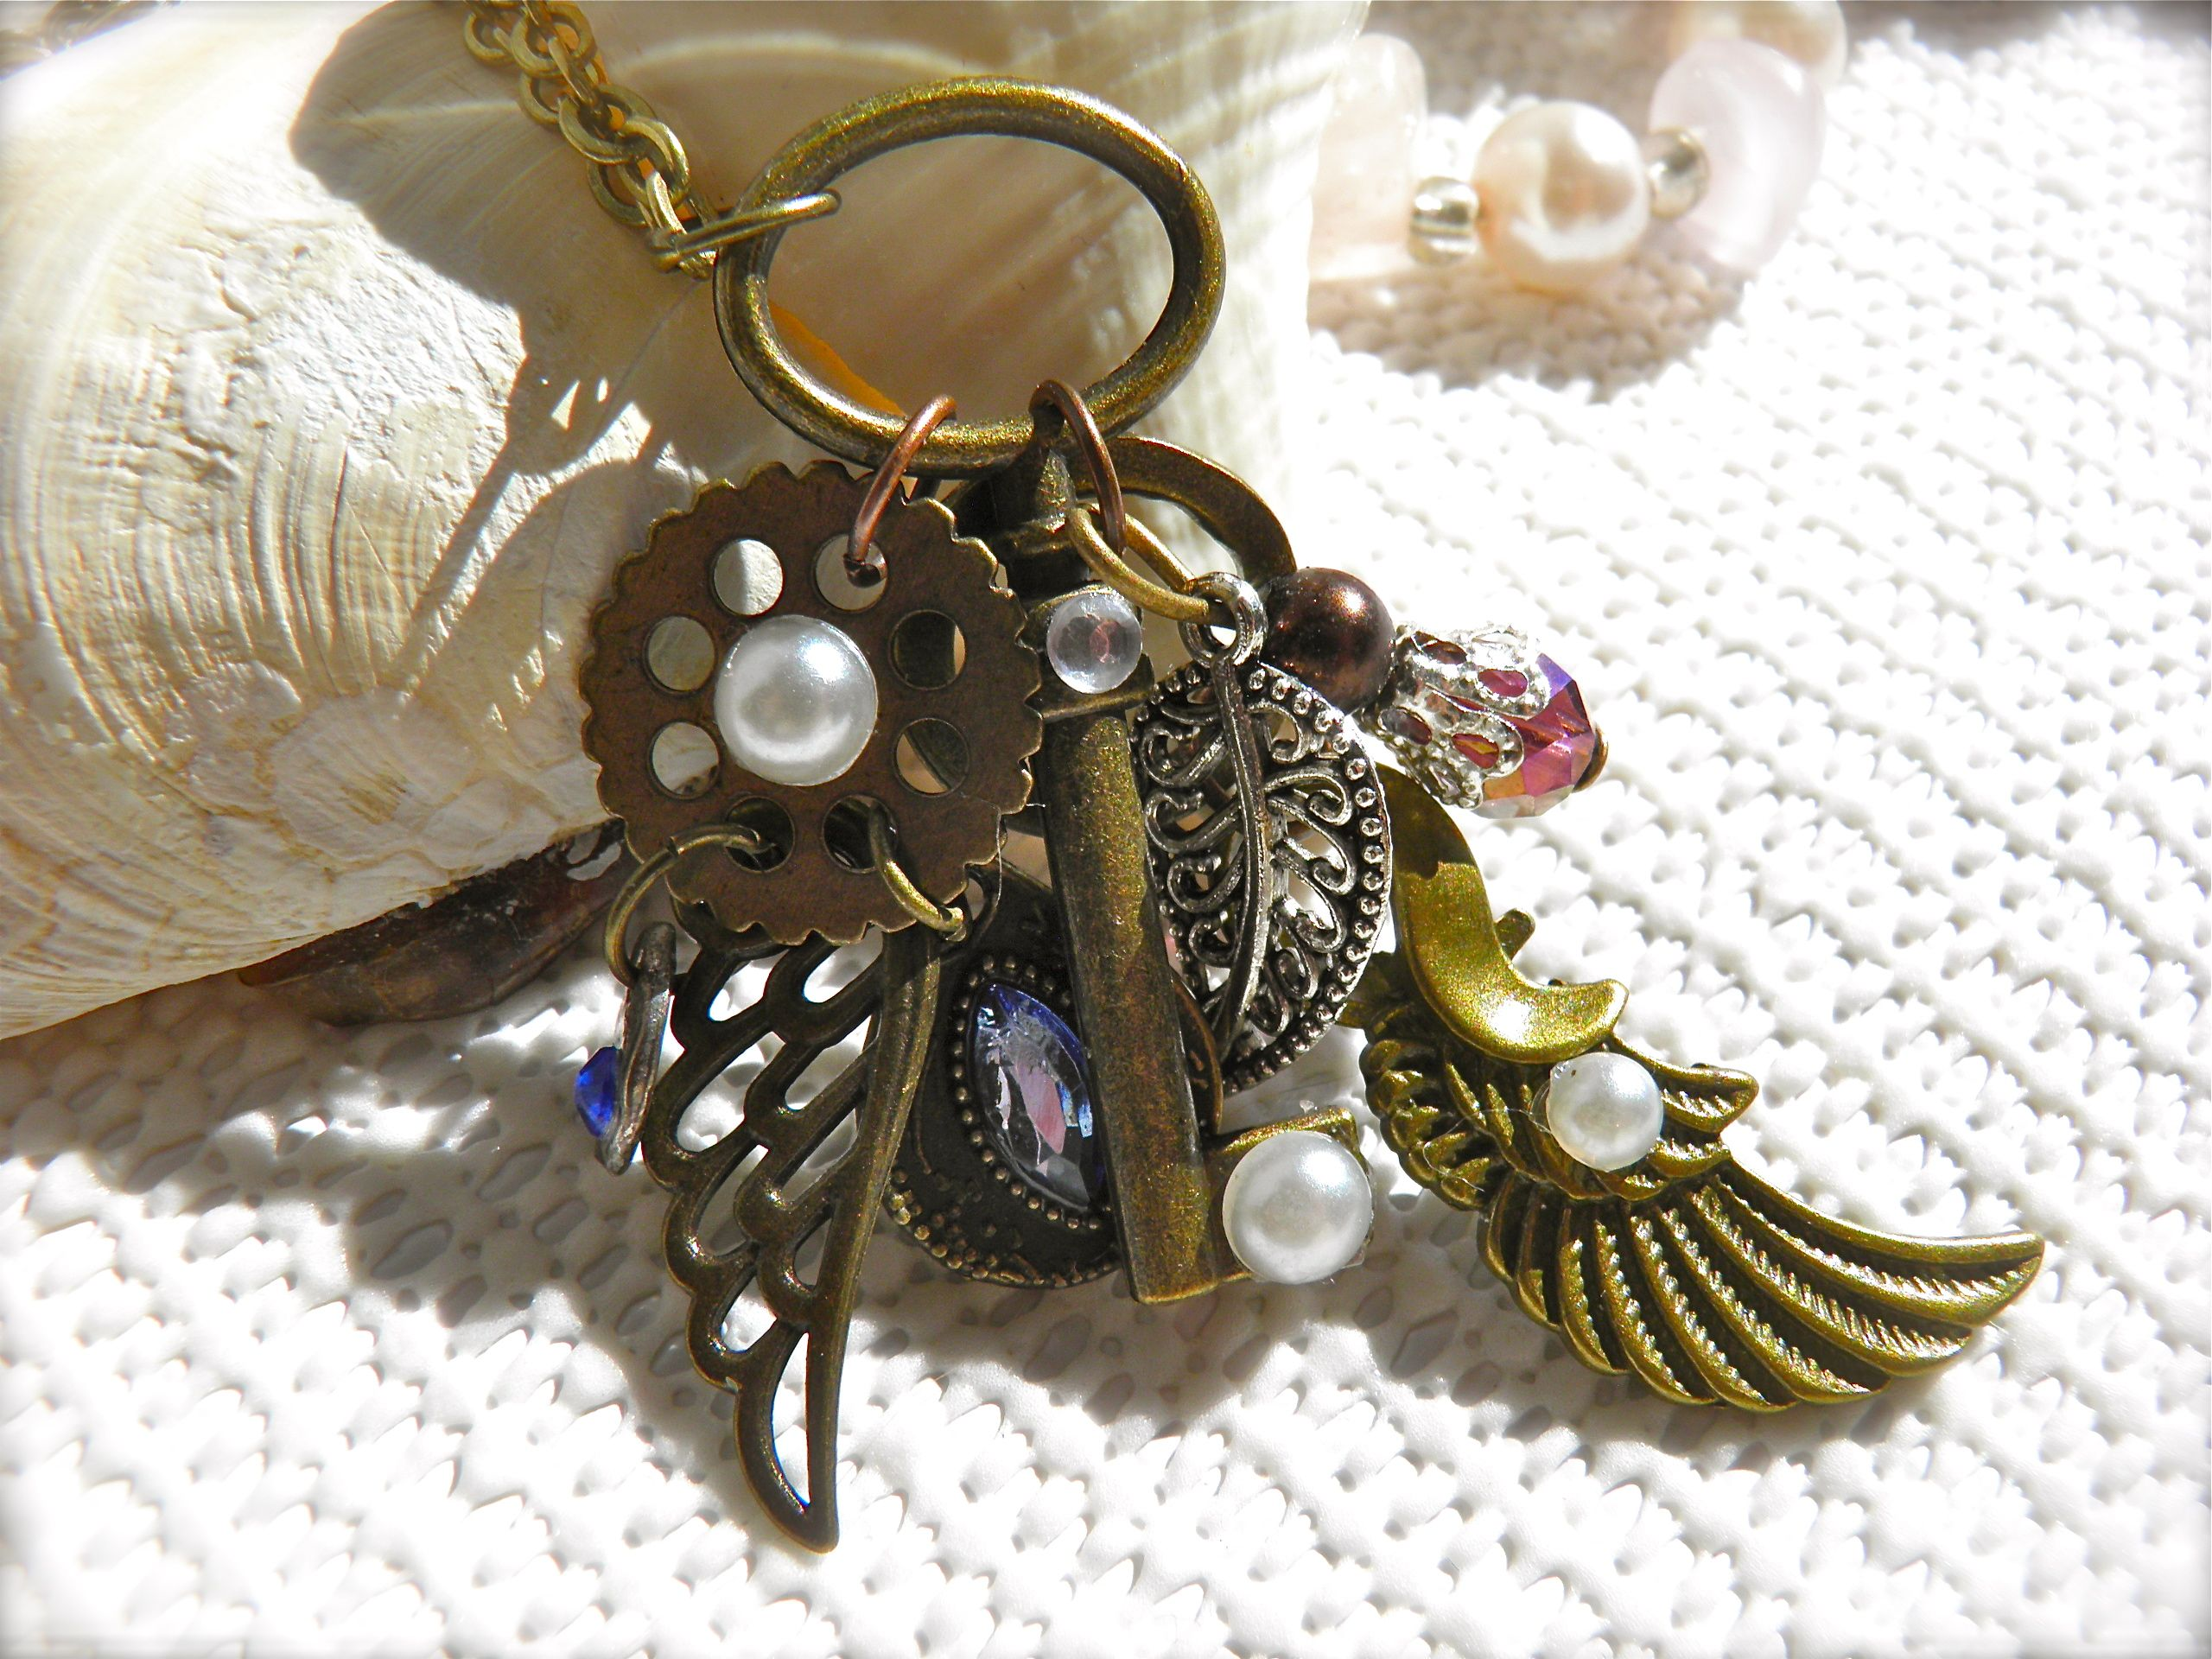 Jewelry Necklace. Bronze Skeleton Key Angel Wings Steampunk Pendant. Jewelry Cosplay Costumes Accessories. https://www.etsy.com/ca/listing/469798876 #Steampunk #Etsy #Gift #SkeletonKey #SteampunkJewelry